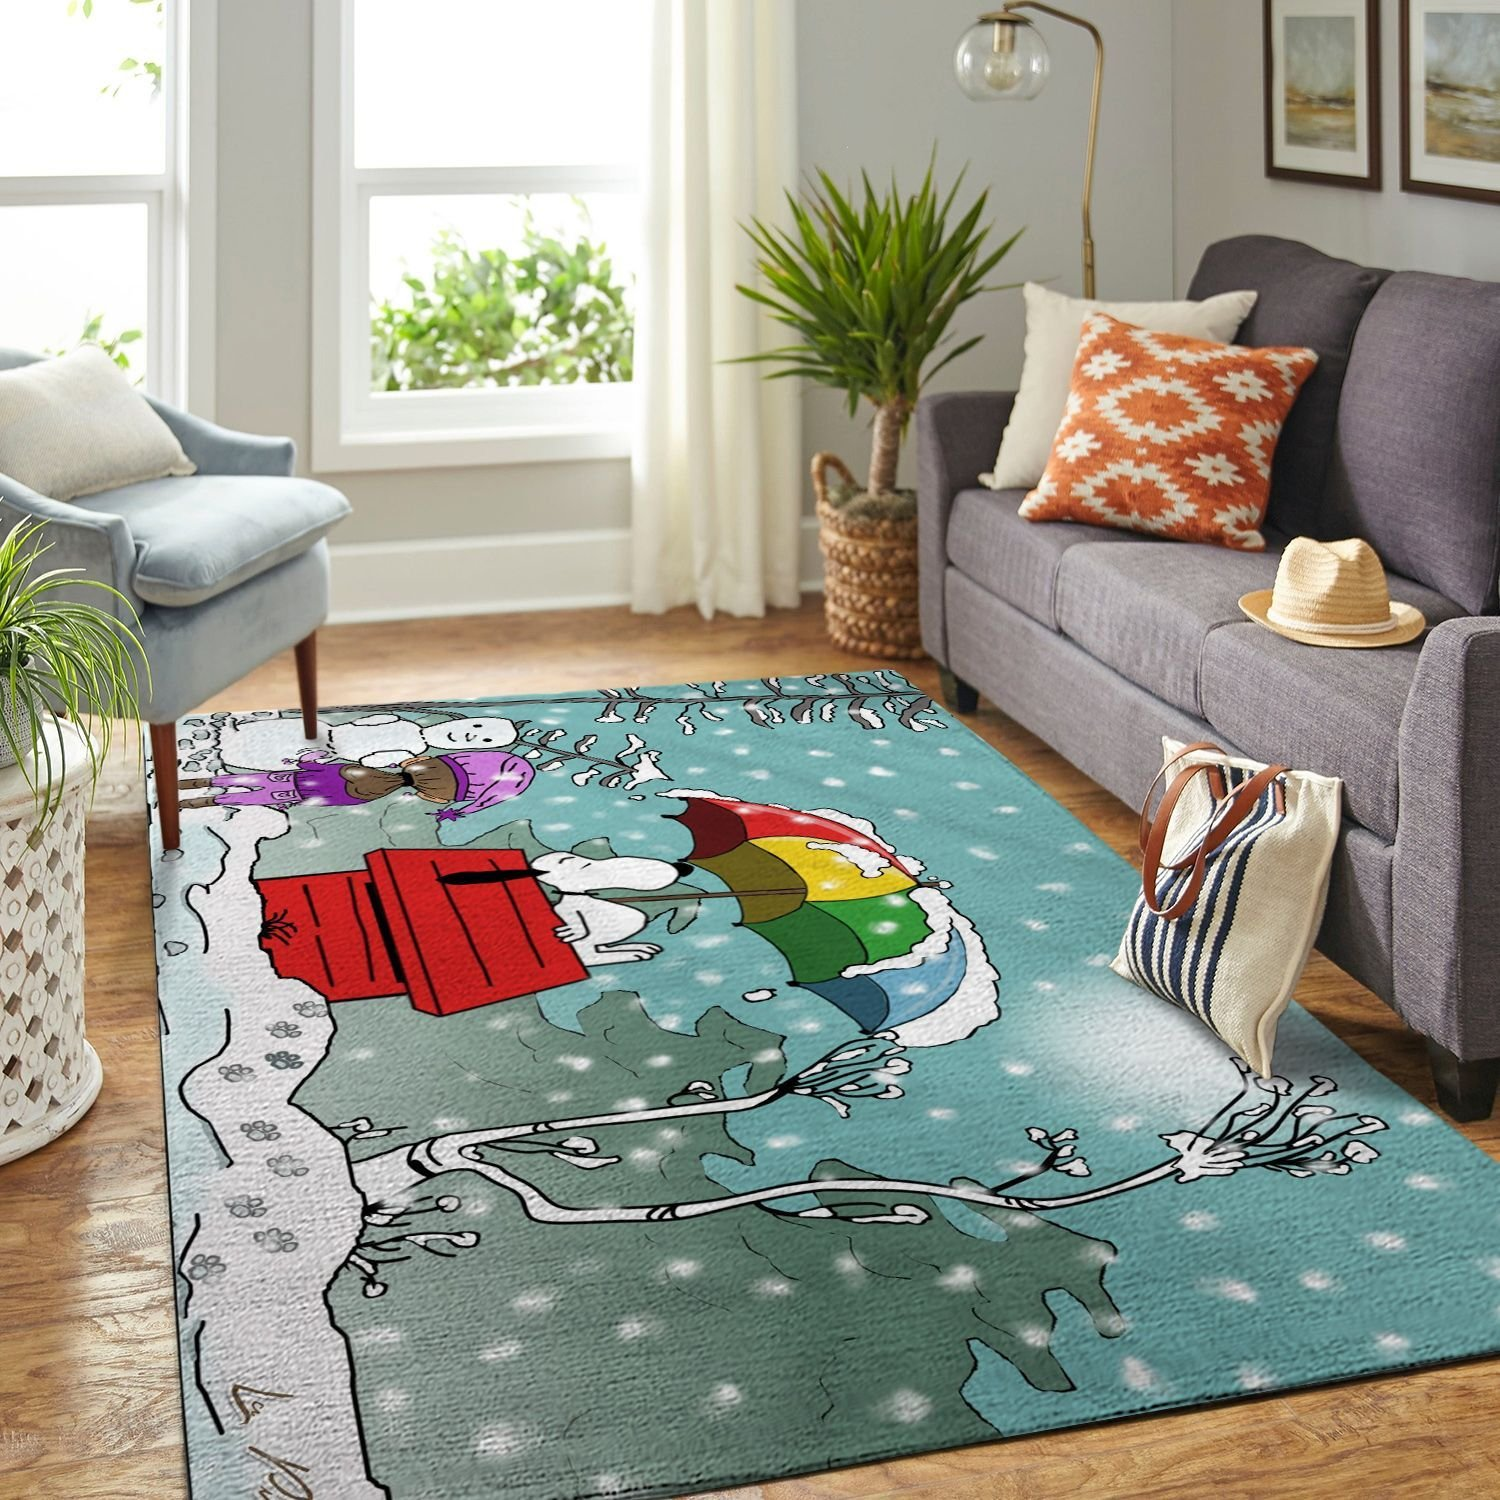 Amazon Snoopy Dog And Peanuts Comic Living Room Area No6534 Rug